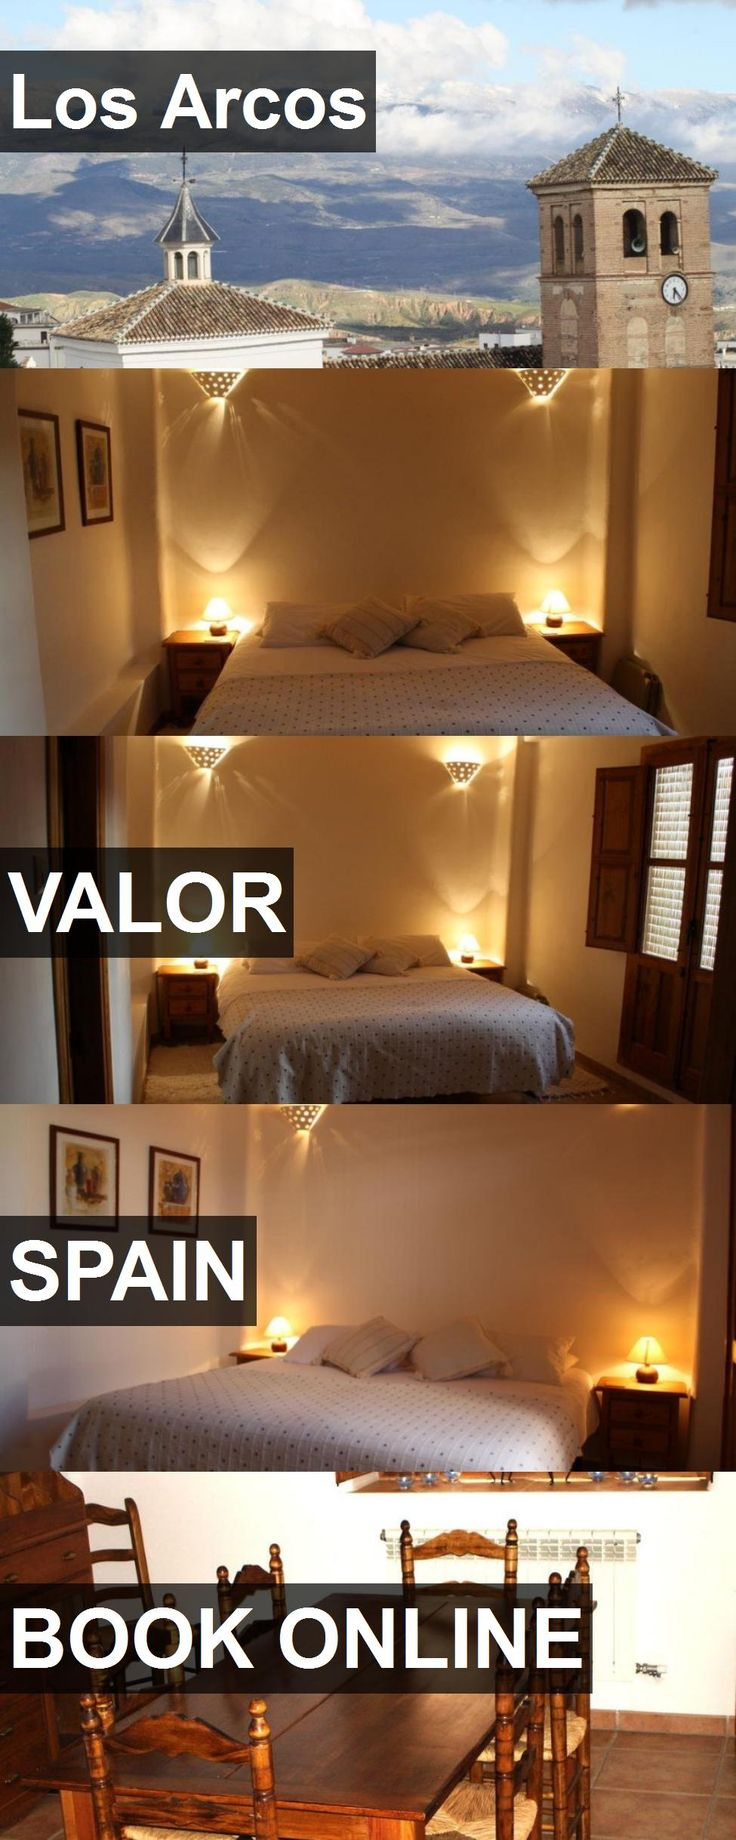 Hotel Los Arcos in Valor, Spain. For more information, photos, reviews and best prices please follow the link. #Spain #Valor #travel #vacation #hotel